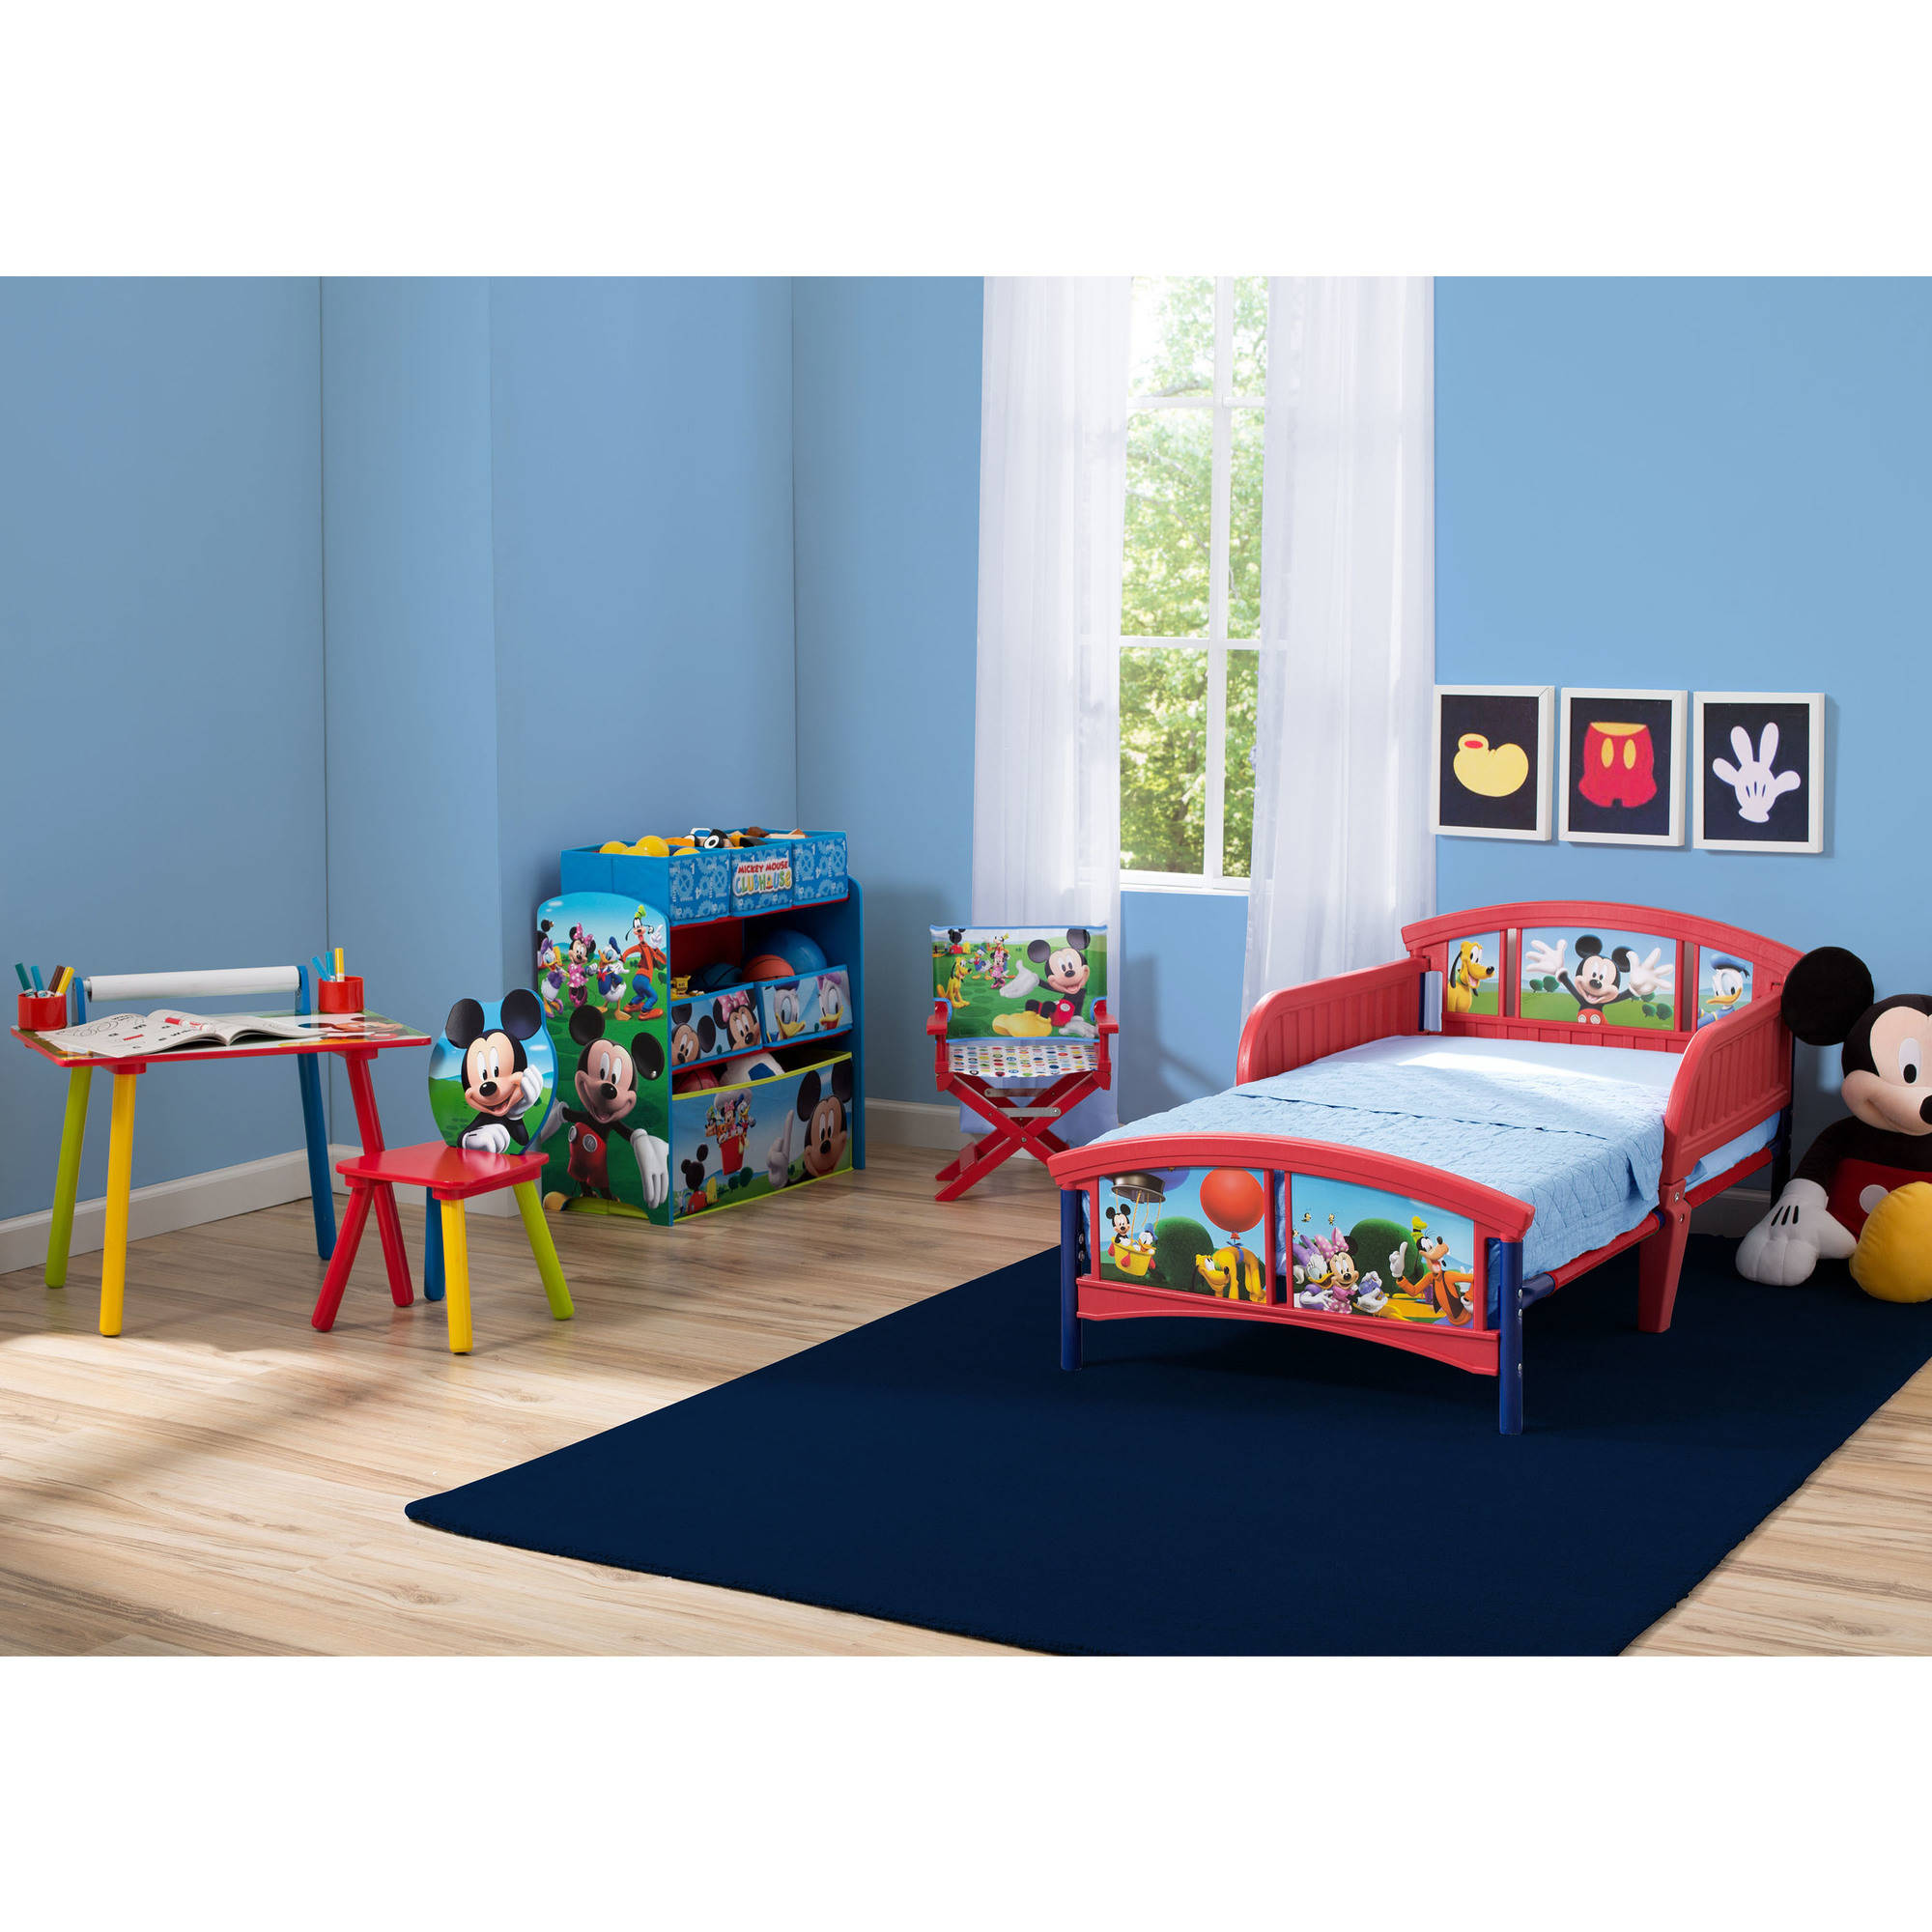 disney mickey mouse room in a box with bonus chair walmart com rh walmart com mickey mouse clubhouse toddler room decor mickey mouse toddler room in a box